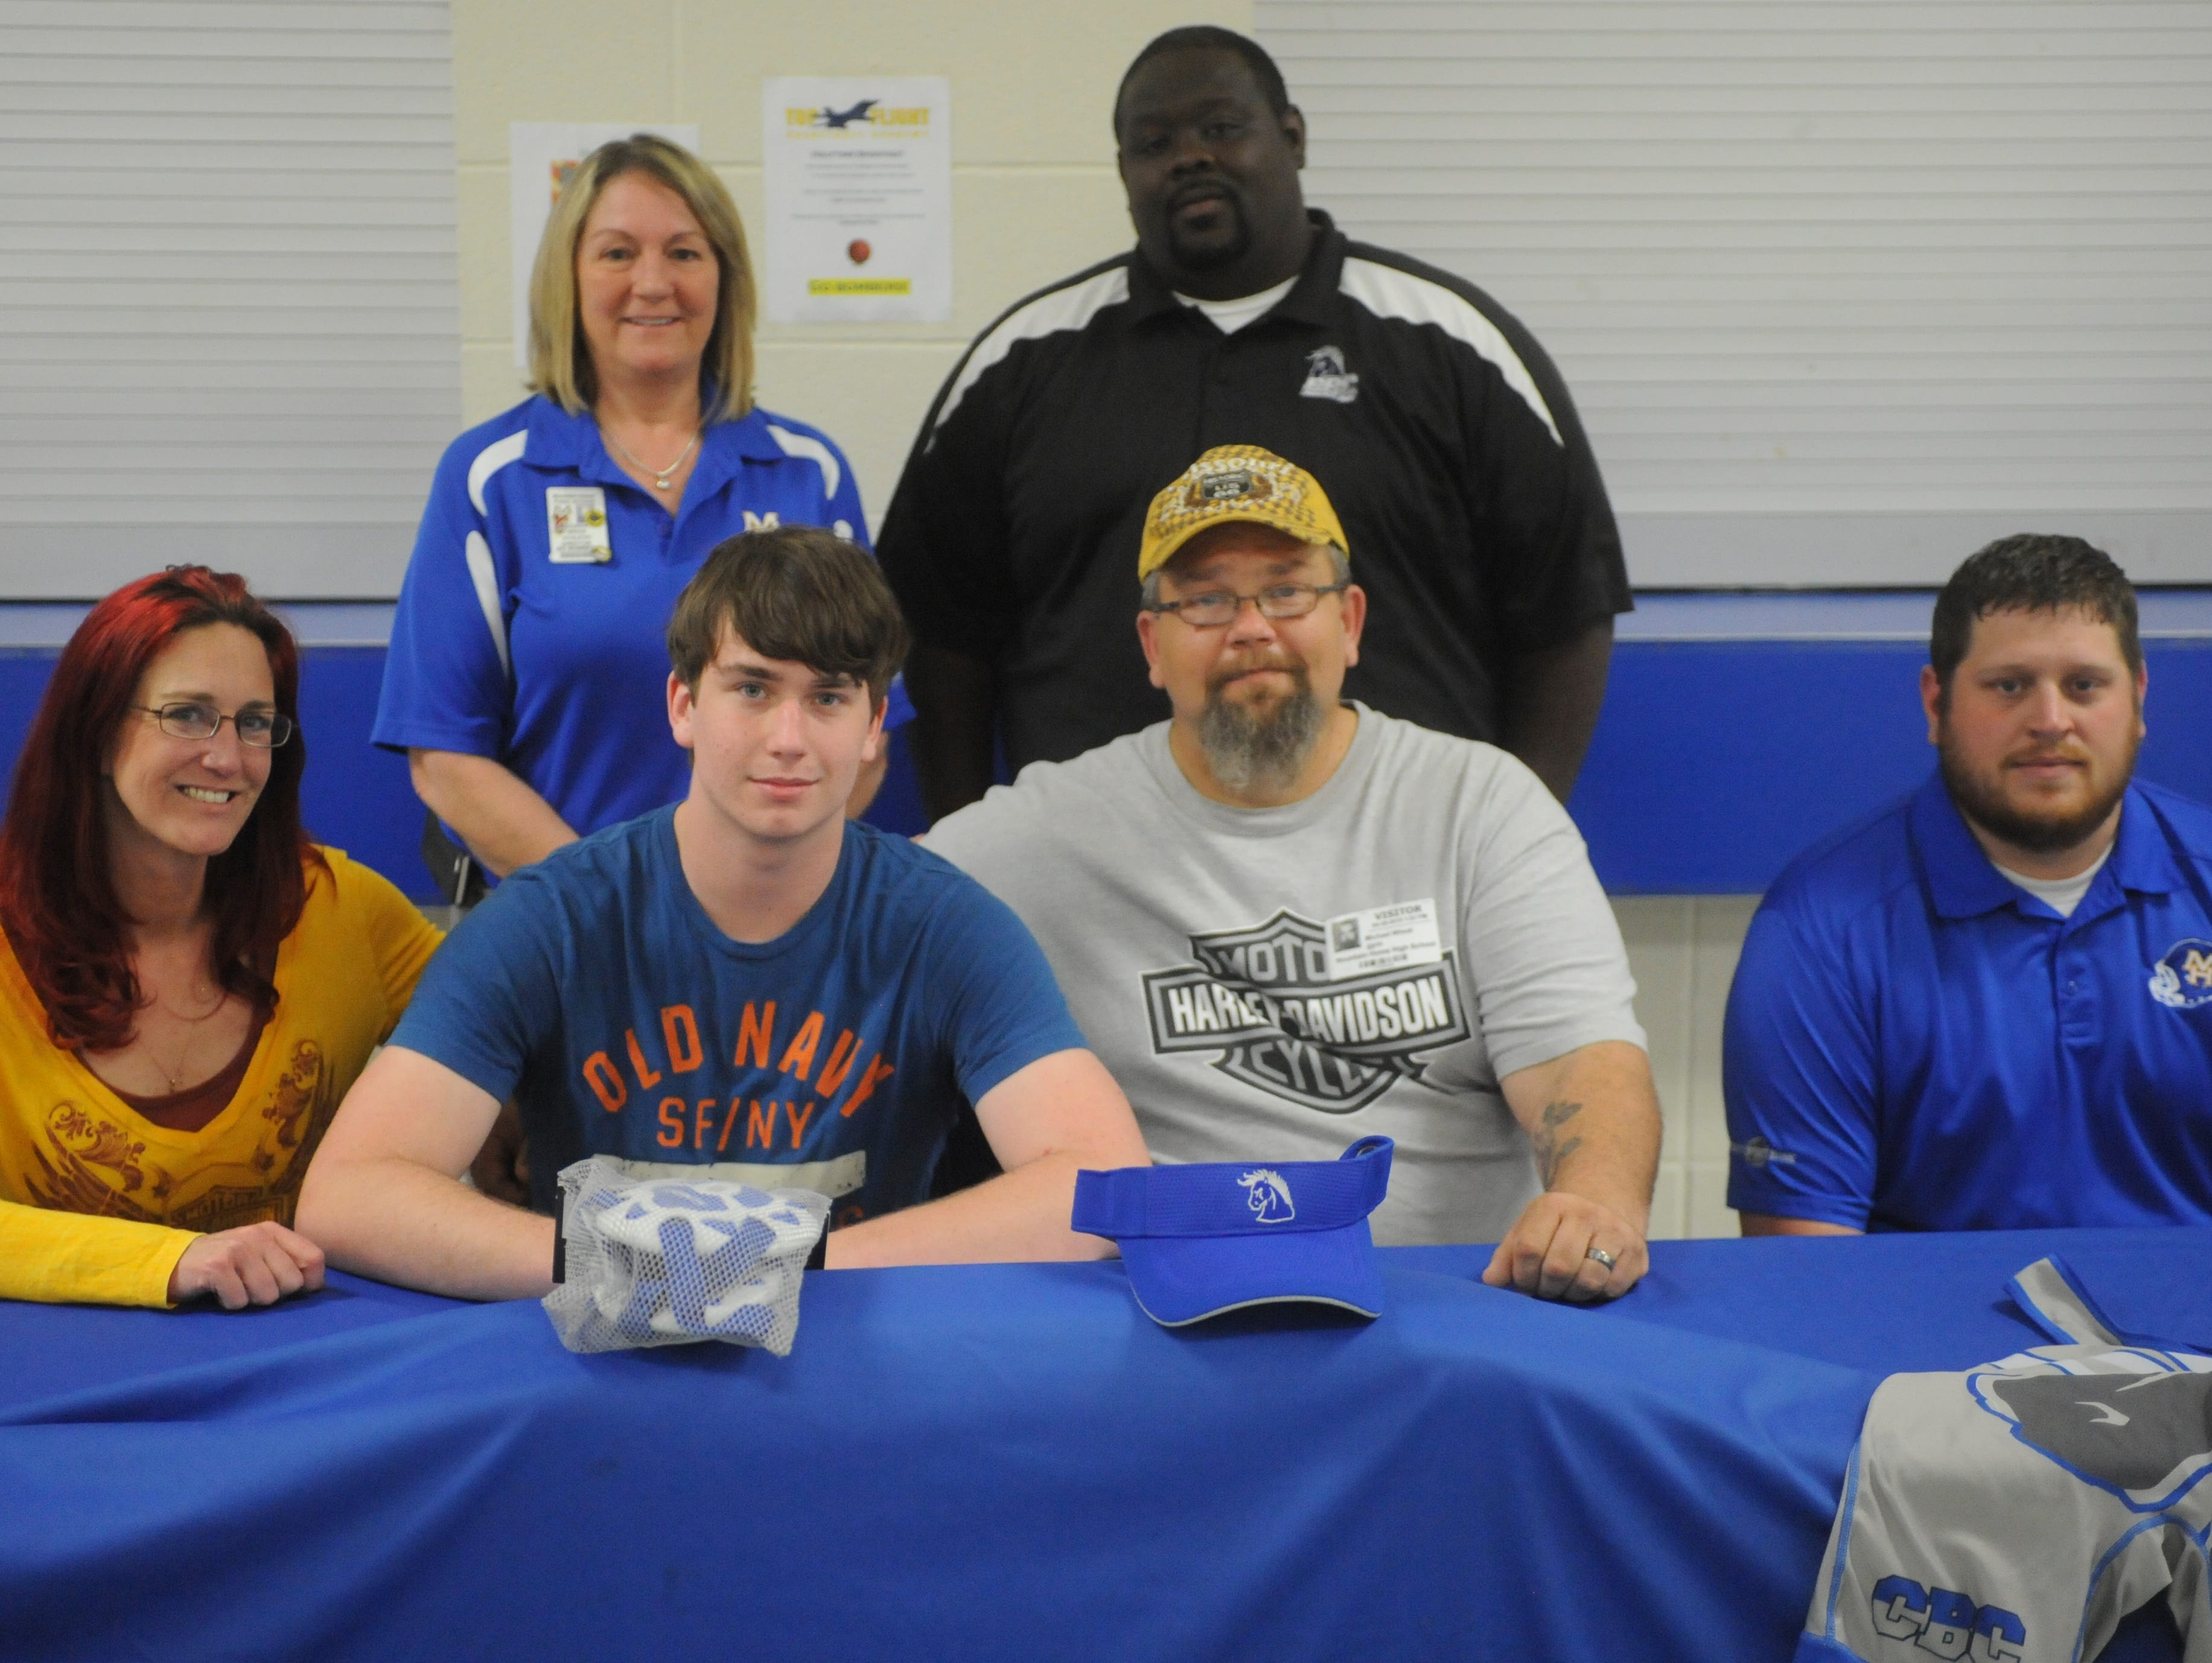 Mountain Home's Jesse Wheat, front row, second from left, signed a National Letter of Intent on Monday to wrestle at Central Baptist College in Conway. Shown with Wheat are: front row, from left, his mother, Cathy Wheat; his father, Mike Wheat; Mountain Home wrestling coach Damon Eikenhorst; back row, Mountain Home High School athletics director Janet Wood and CBC wrestling coach Ken Prophete.